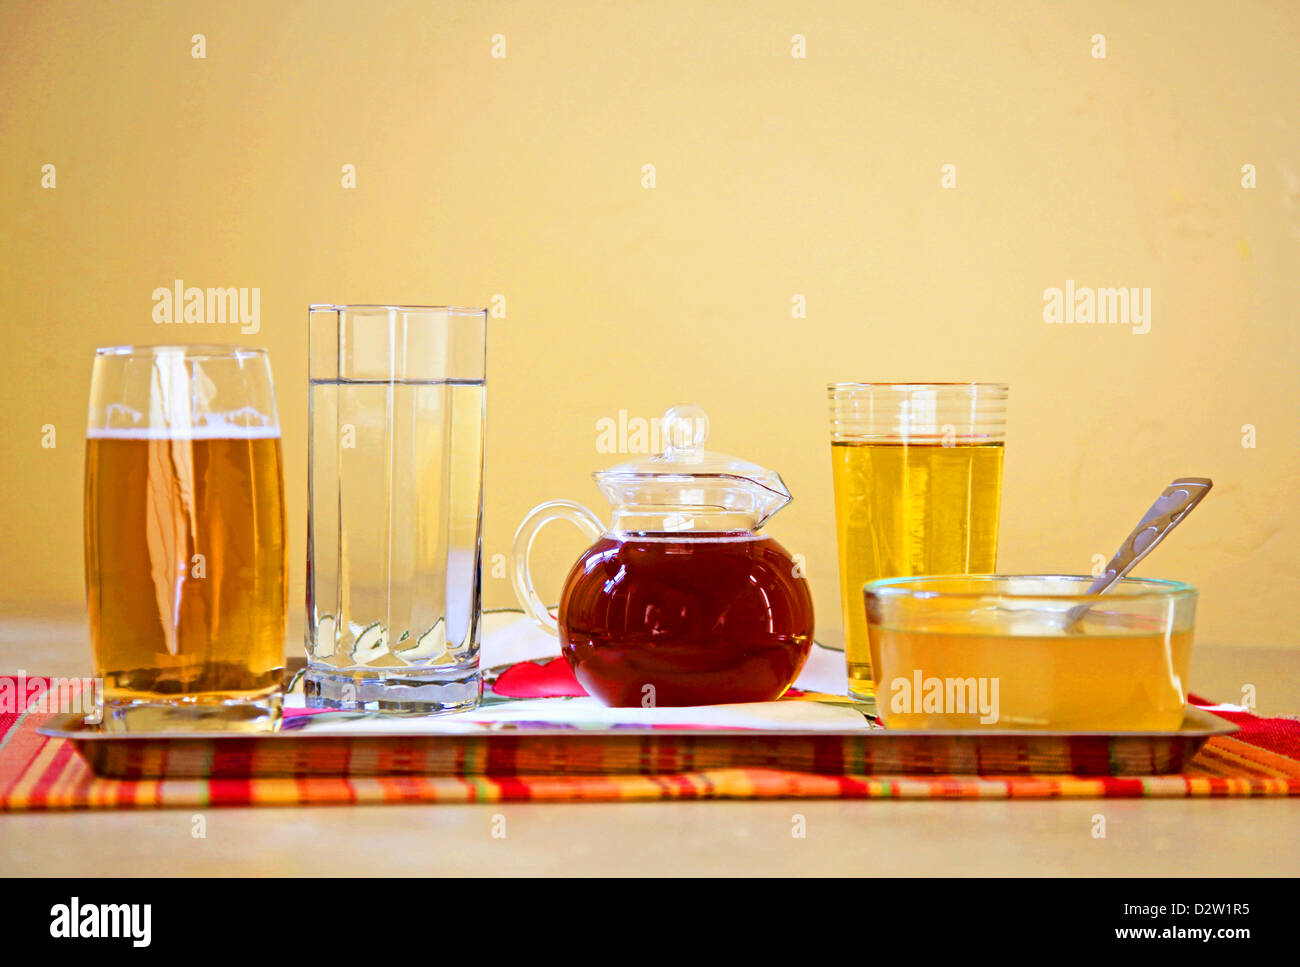 Clear liquid diet items creatively arranged in still life composition.  Diet is used for health and/or gastric/ - Stock Image